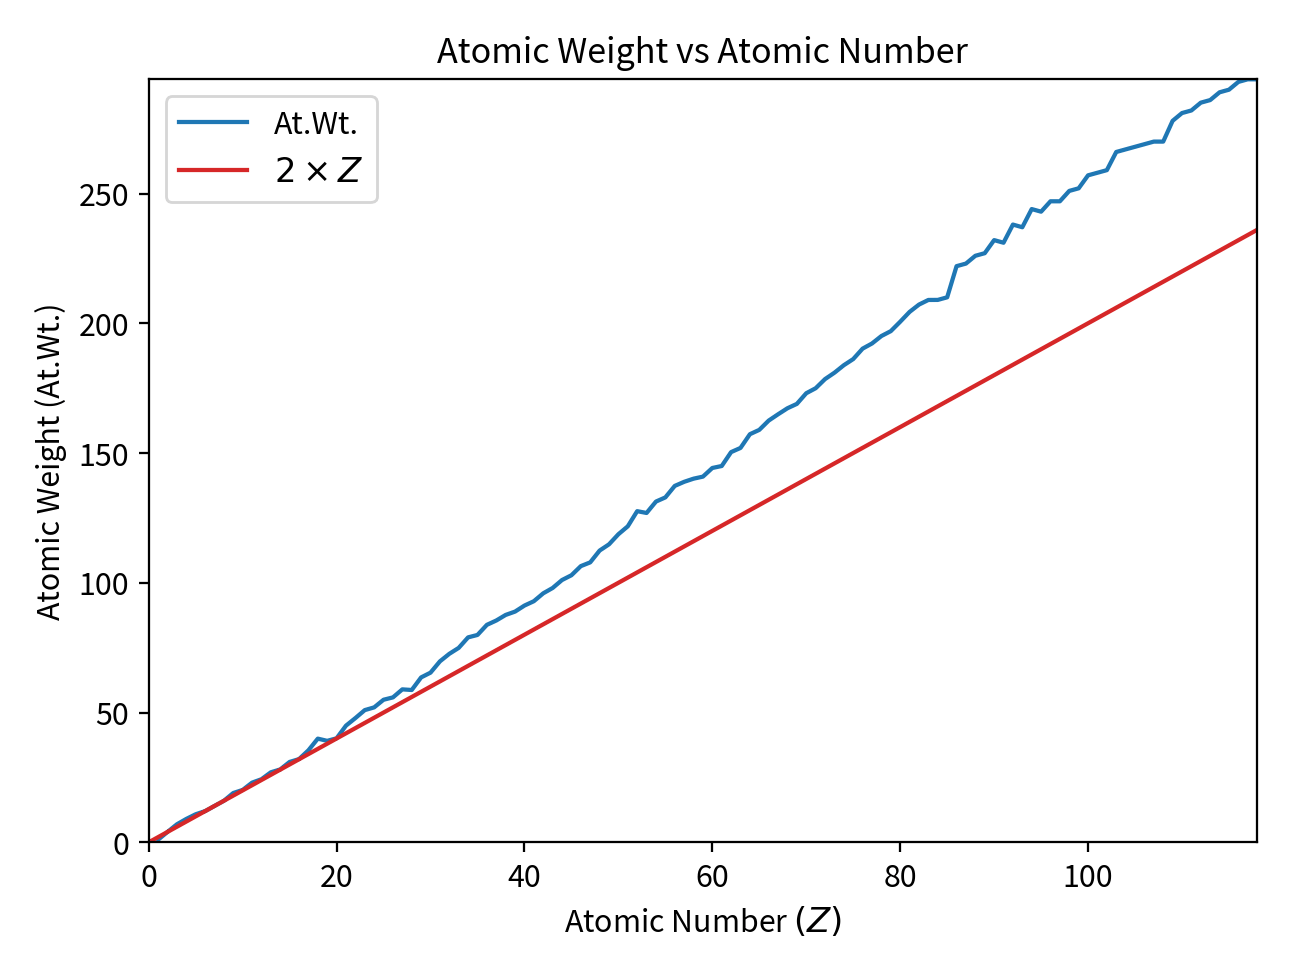 Graph of Atomic Number vs Atomic Weight